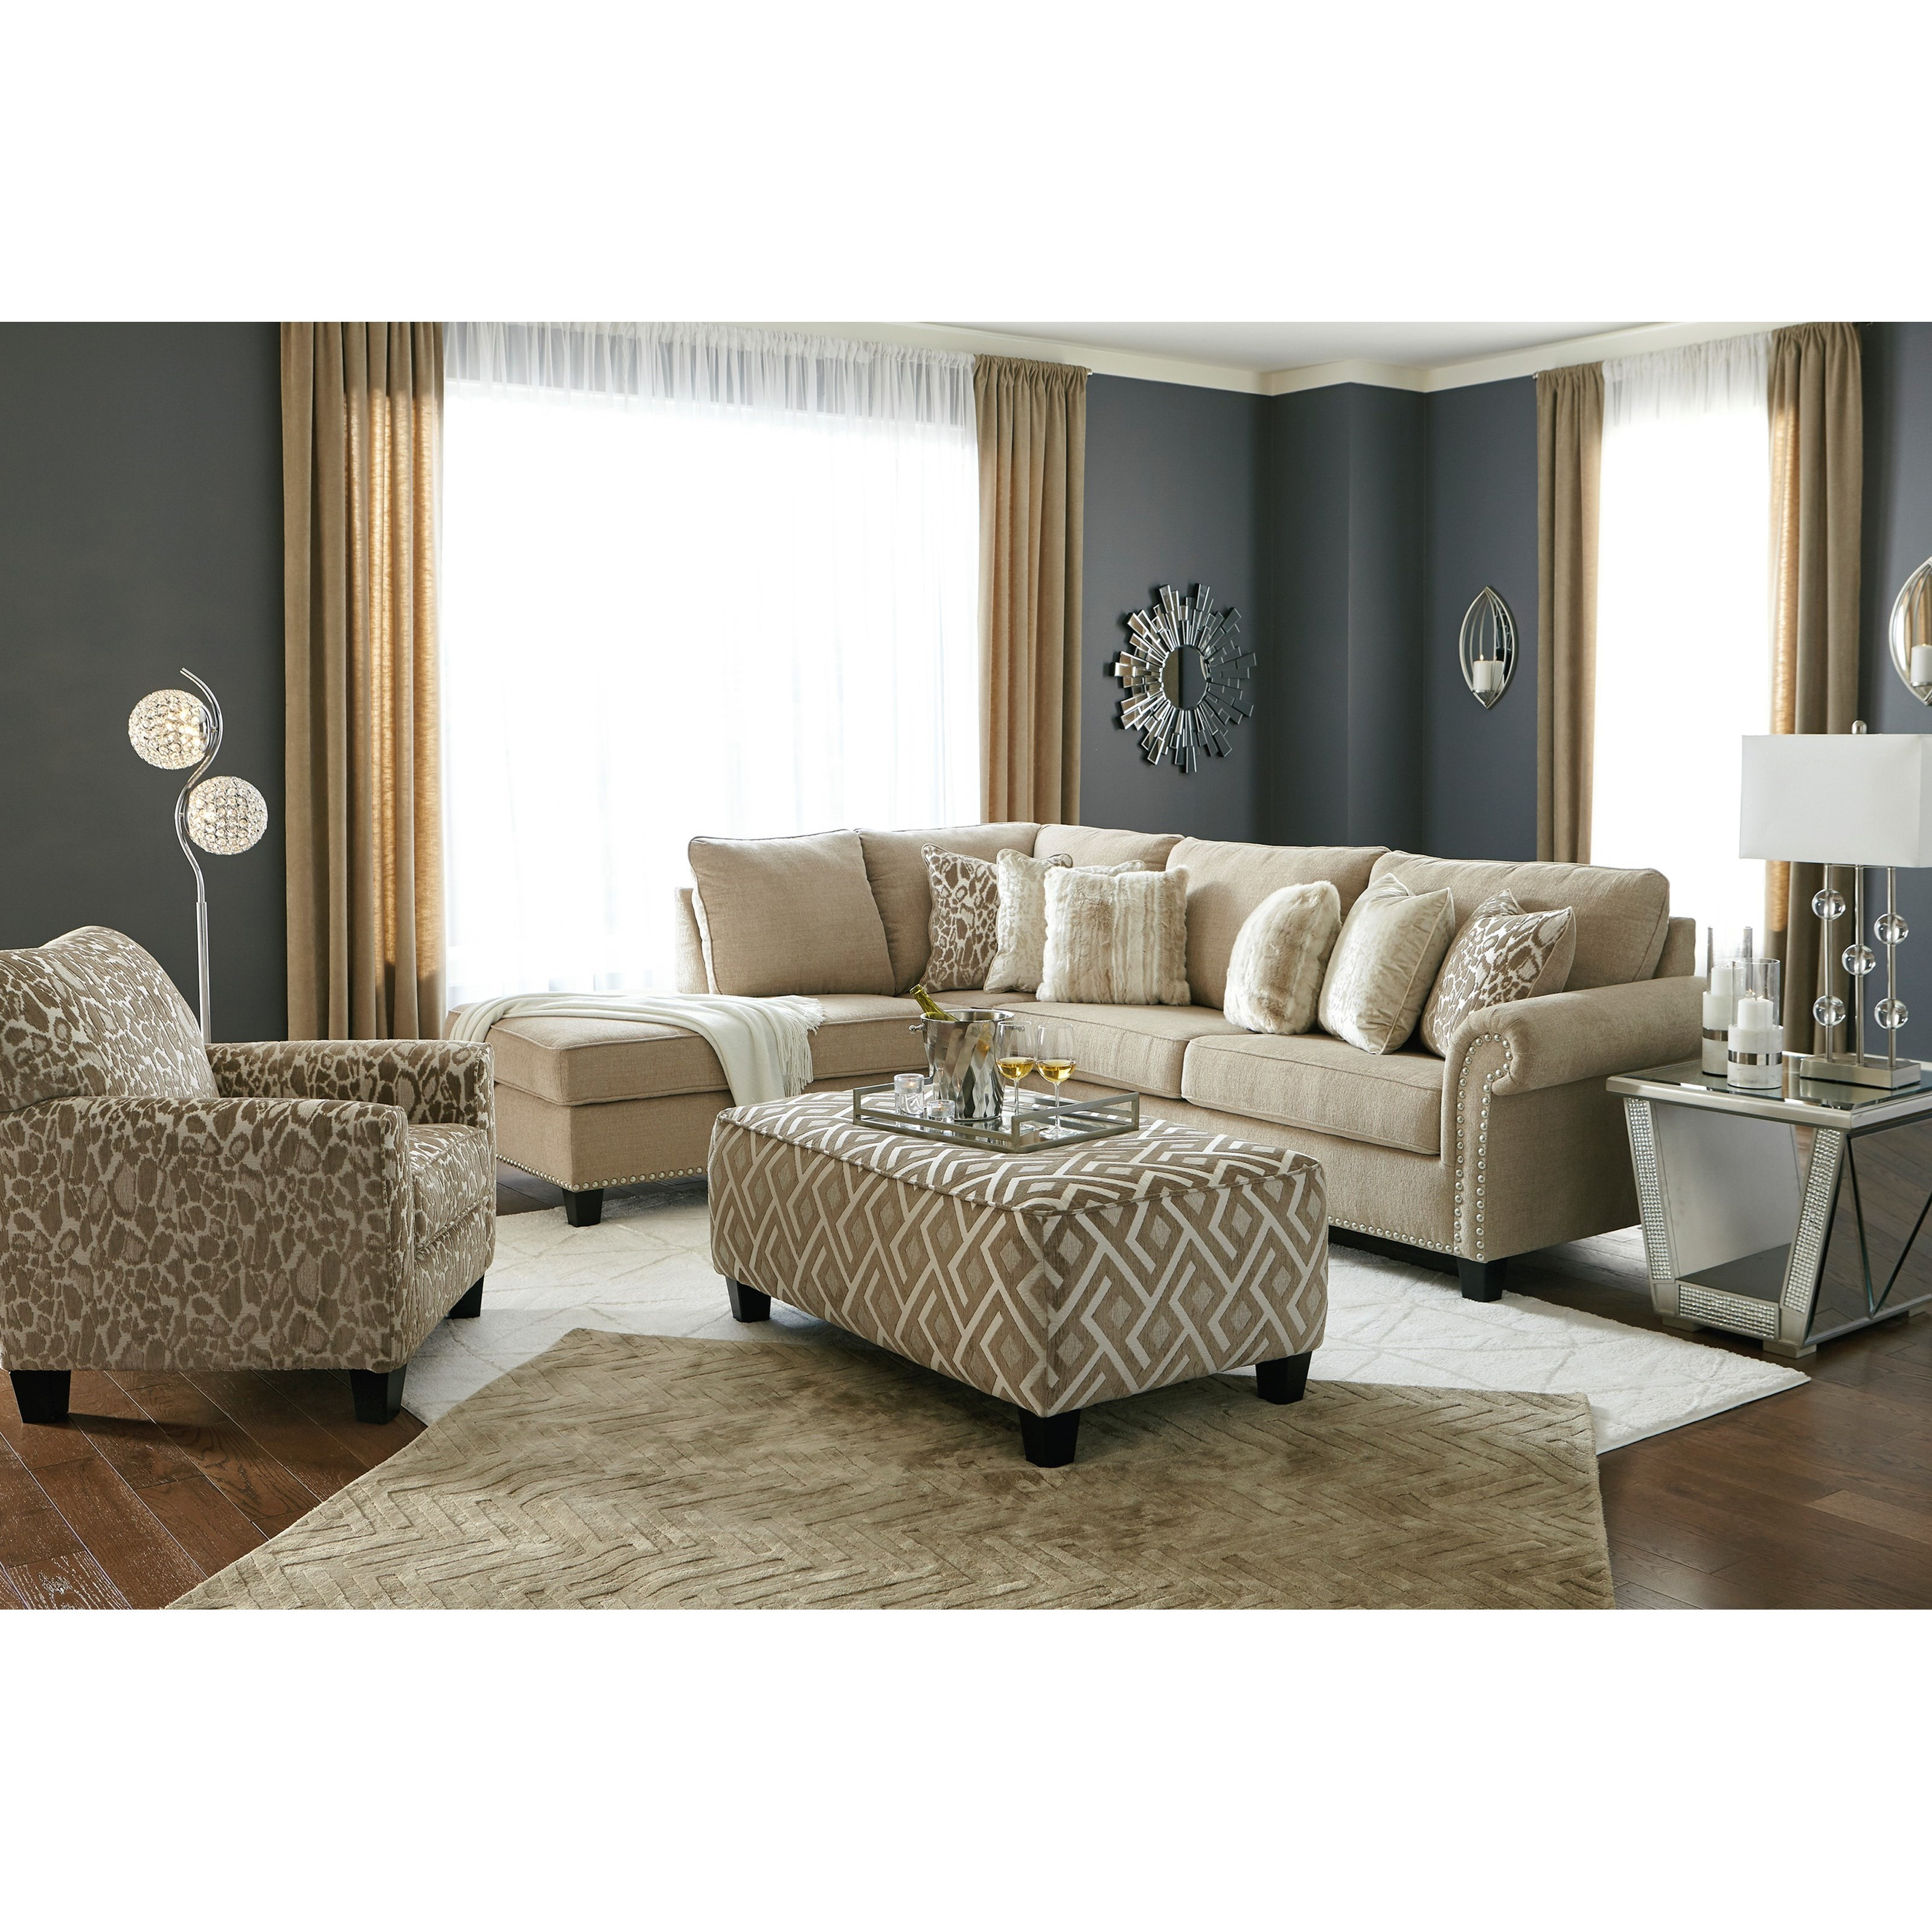 Dovemont Living Room Group by Signature Design by Ashley at Northeast Factory Direct